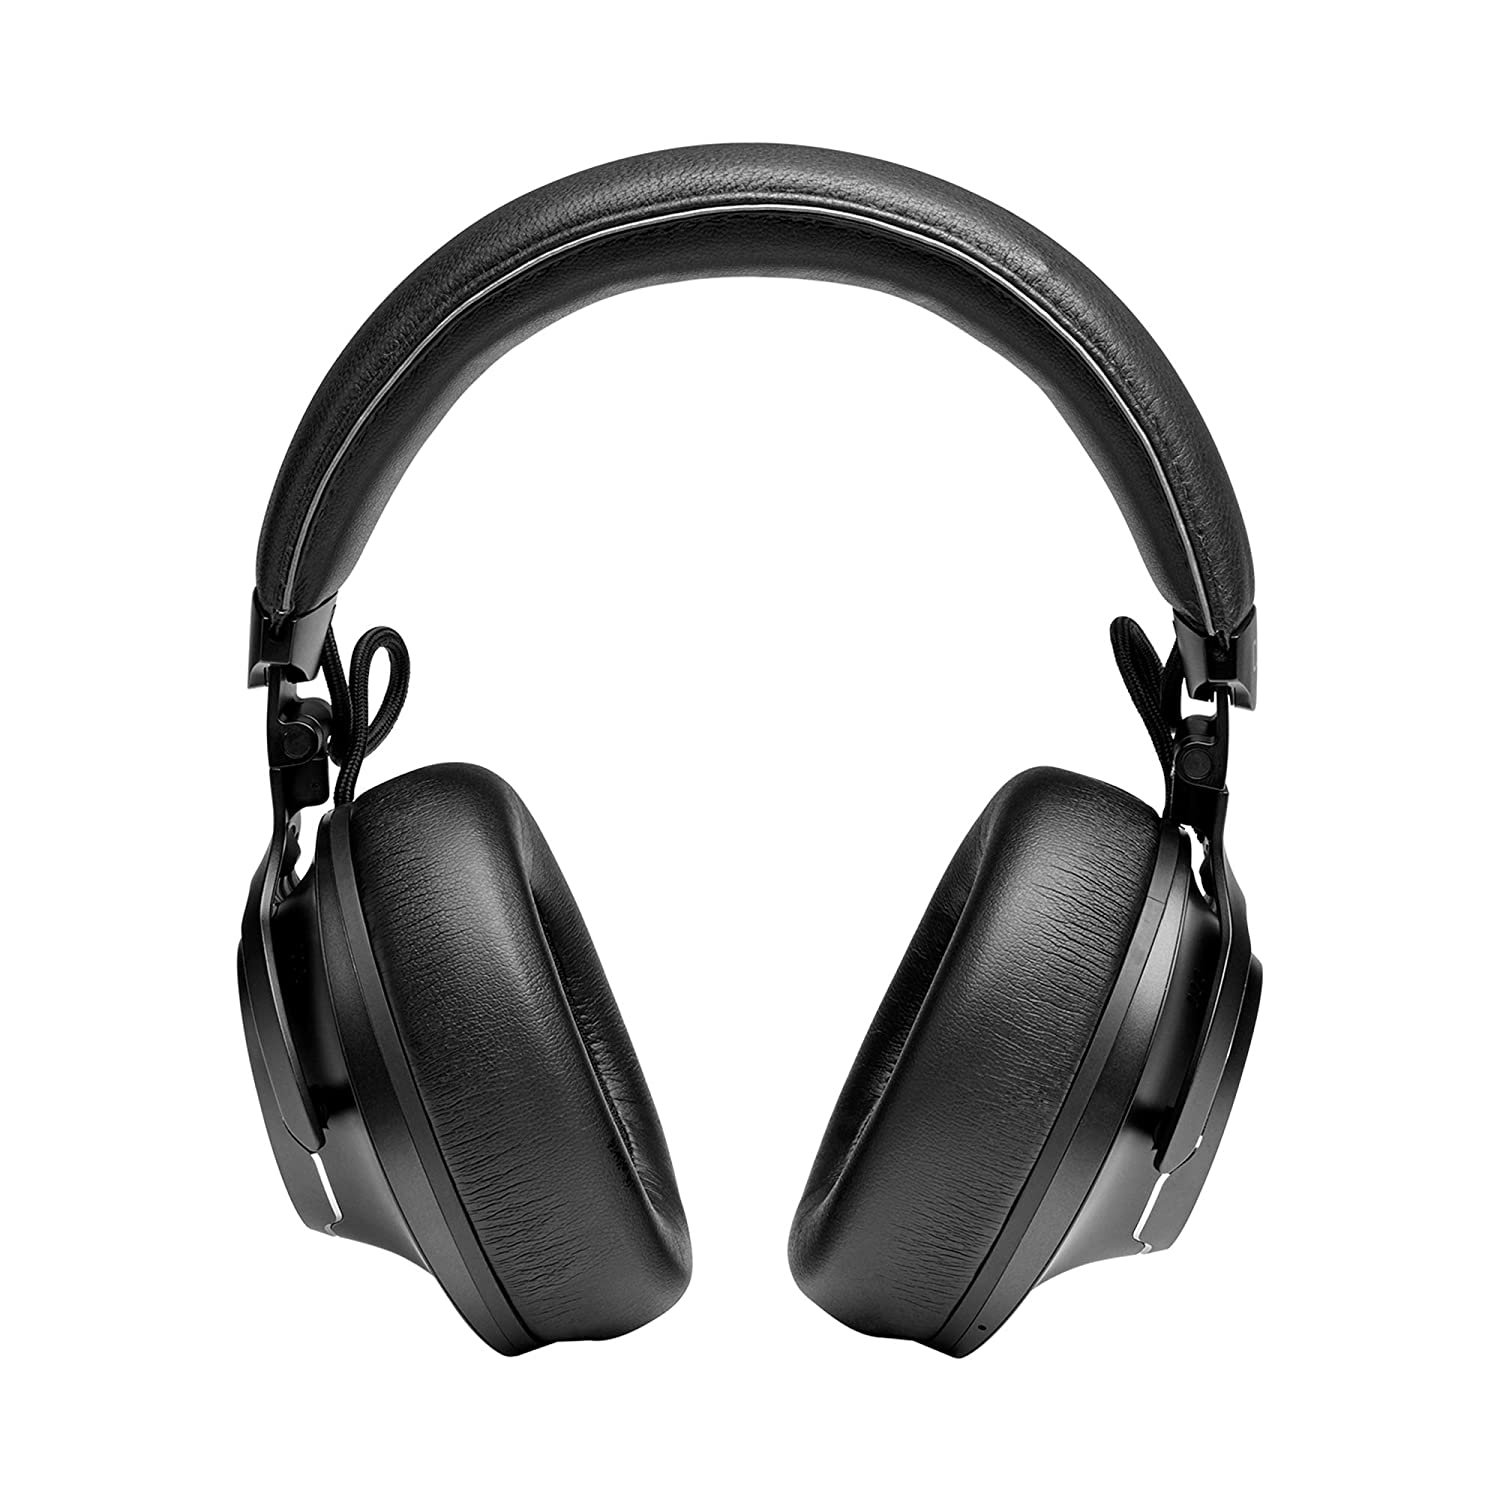 (Renewed) JBL Club One Wireless Over-Ear True Adaptive Noise Cancelling Headphone with  Orange Graphene Drivers, 45 Hours Playtime, Built-in Alexa, Dual Mic, Dual Aux & Bluetooth 5.0